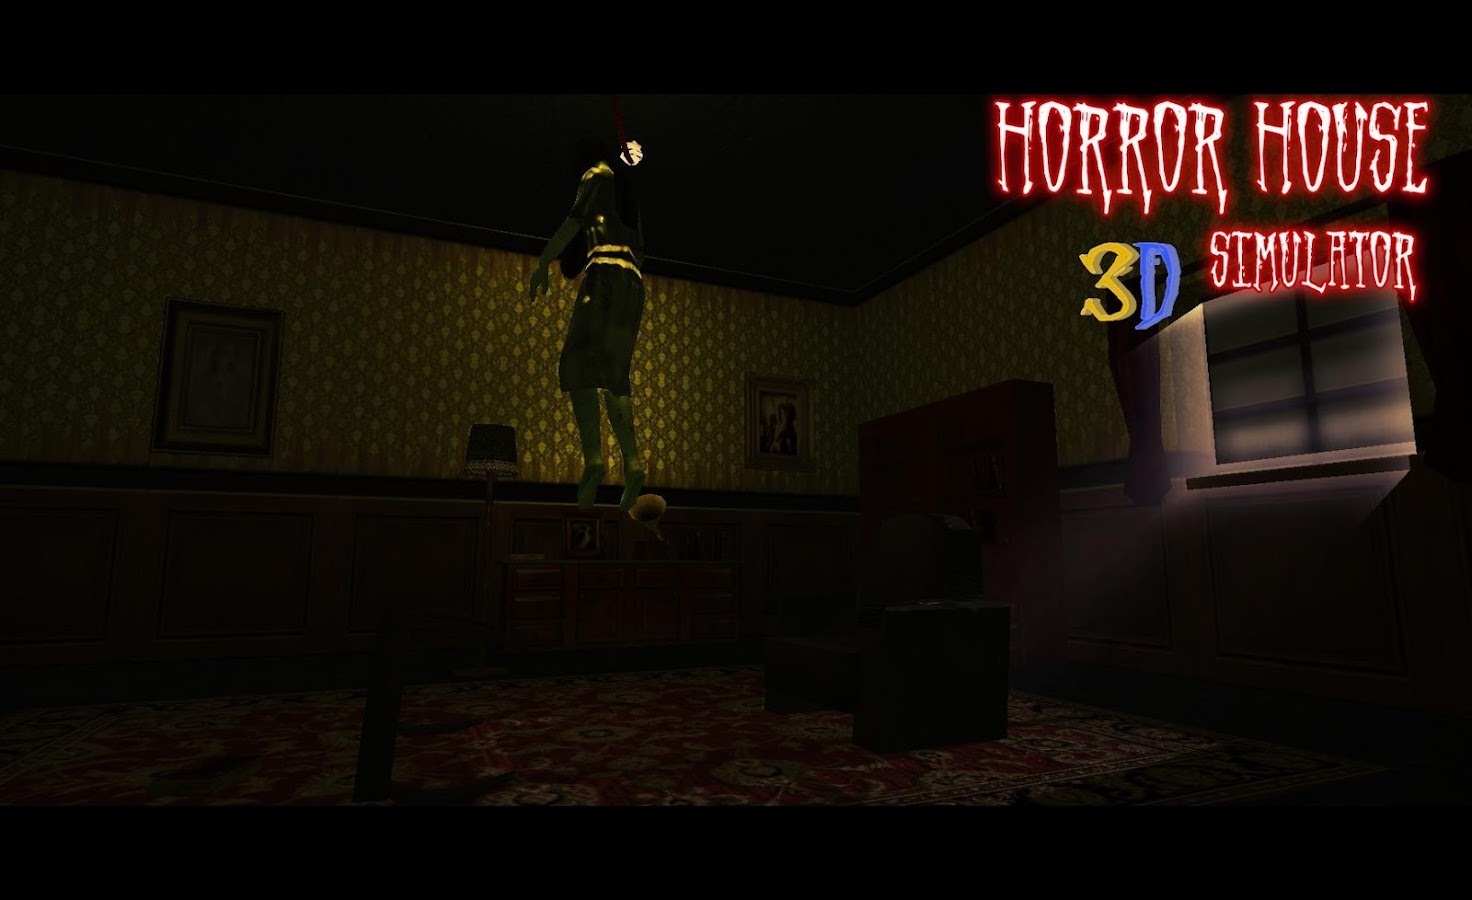 Curse breakers halloween horror mansion walkthrough solution -  Horror House Simulator 3d 1 9 Screenshot 8